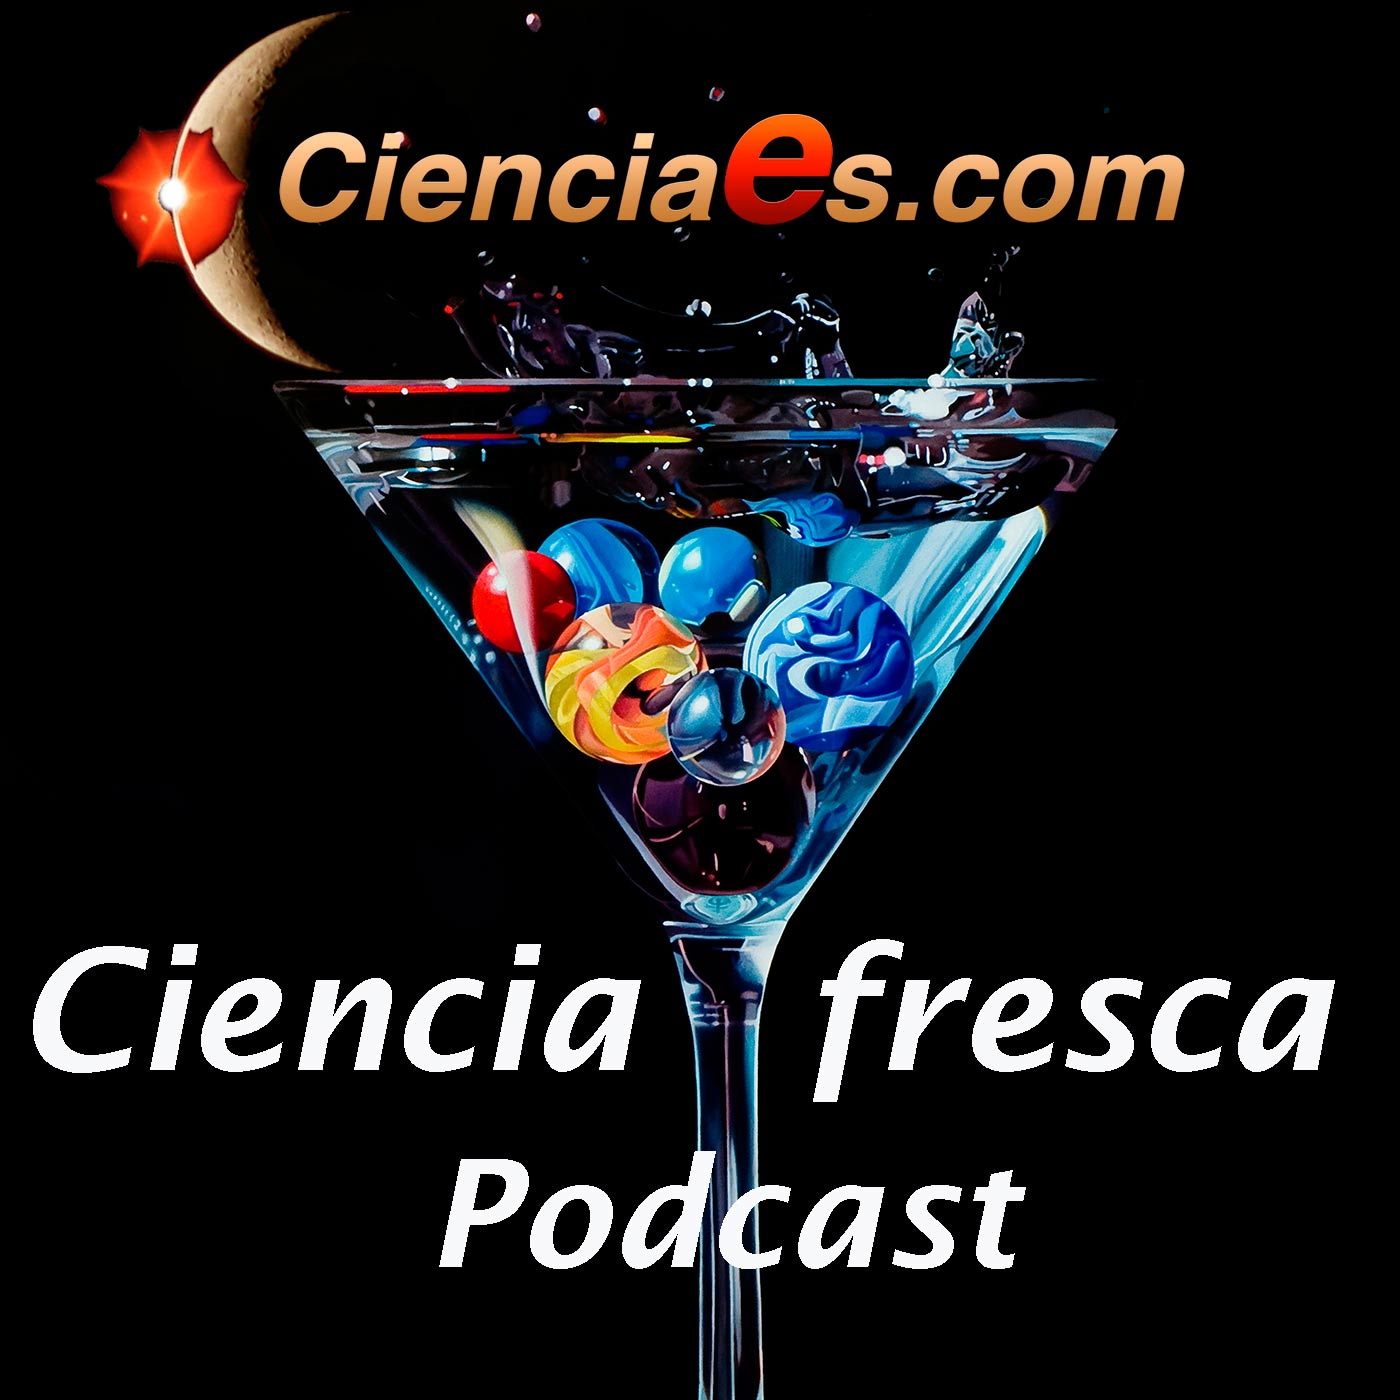 Ciencia Fresca - Cienciaes.com by Cienciaes on Apple Podcasts